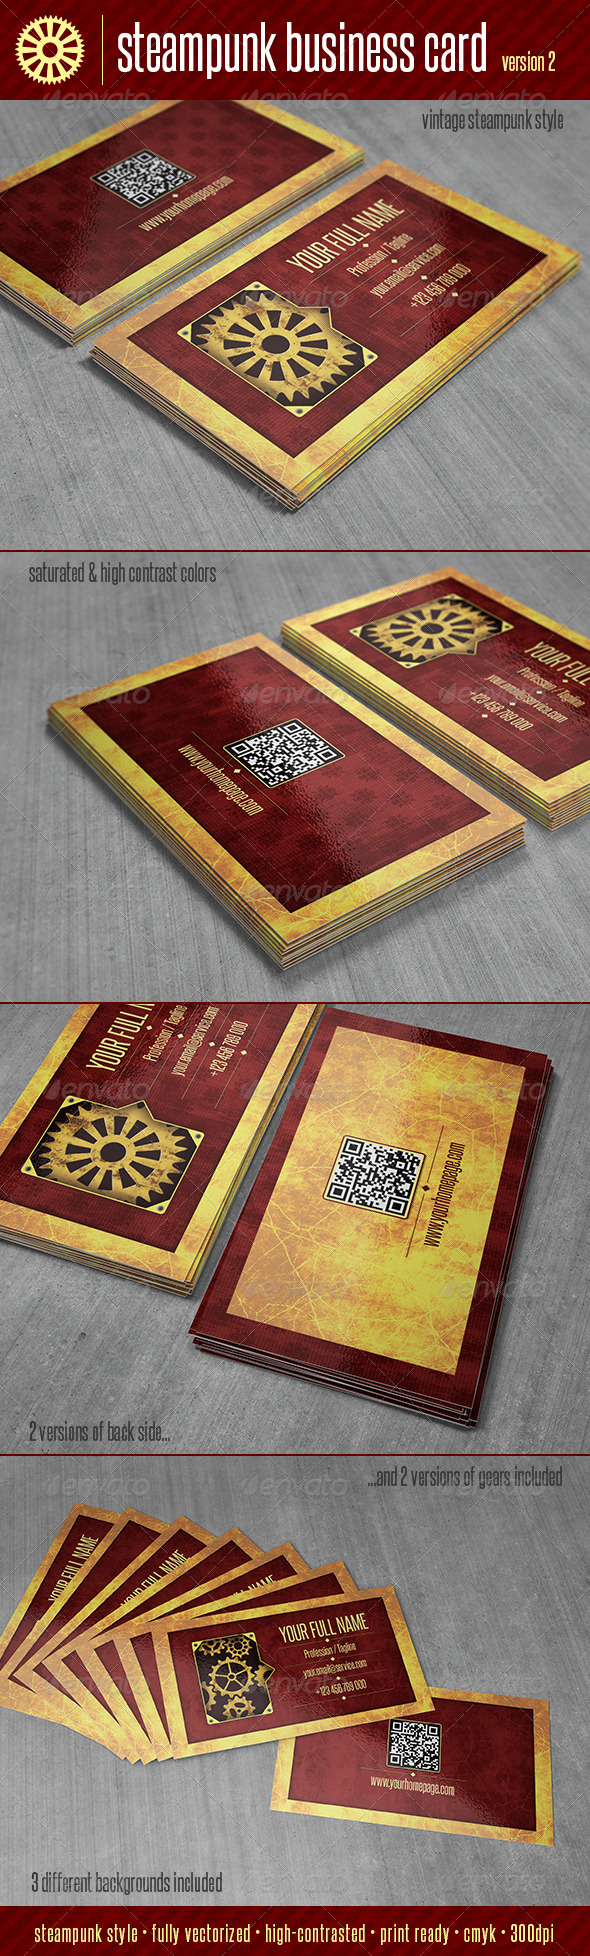 GraphicRiver Steampunk Business Card V2 5999571